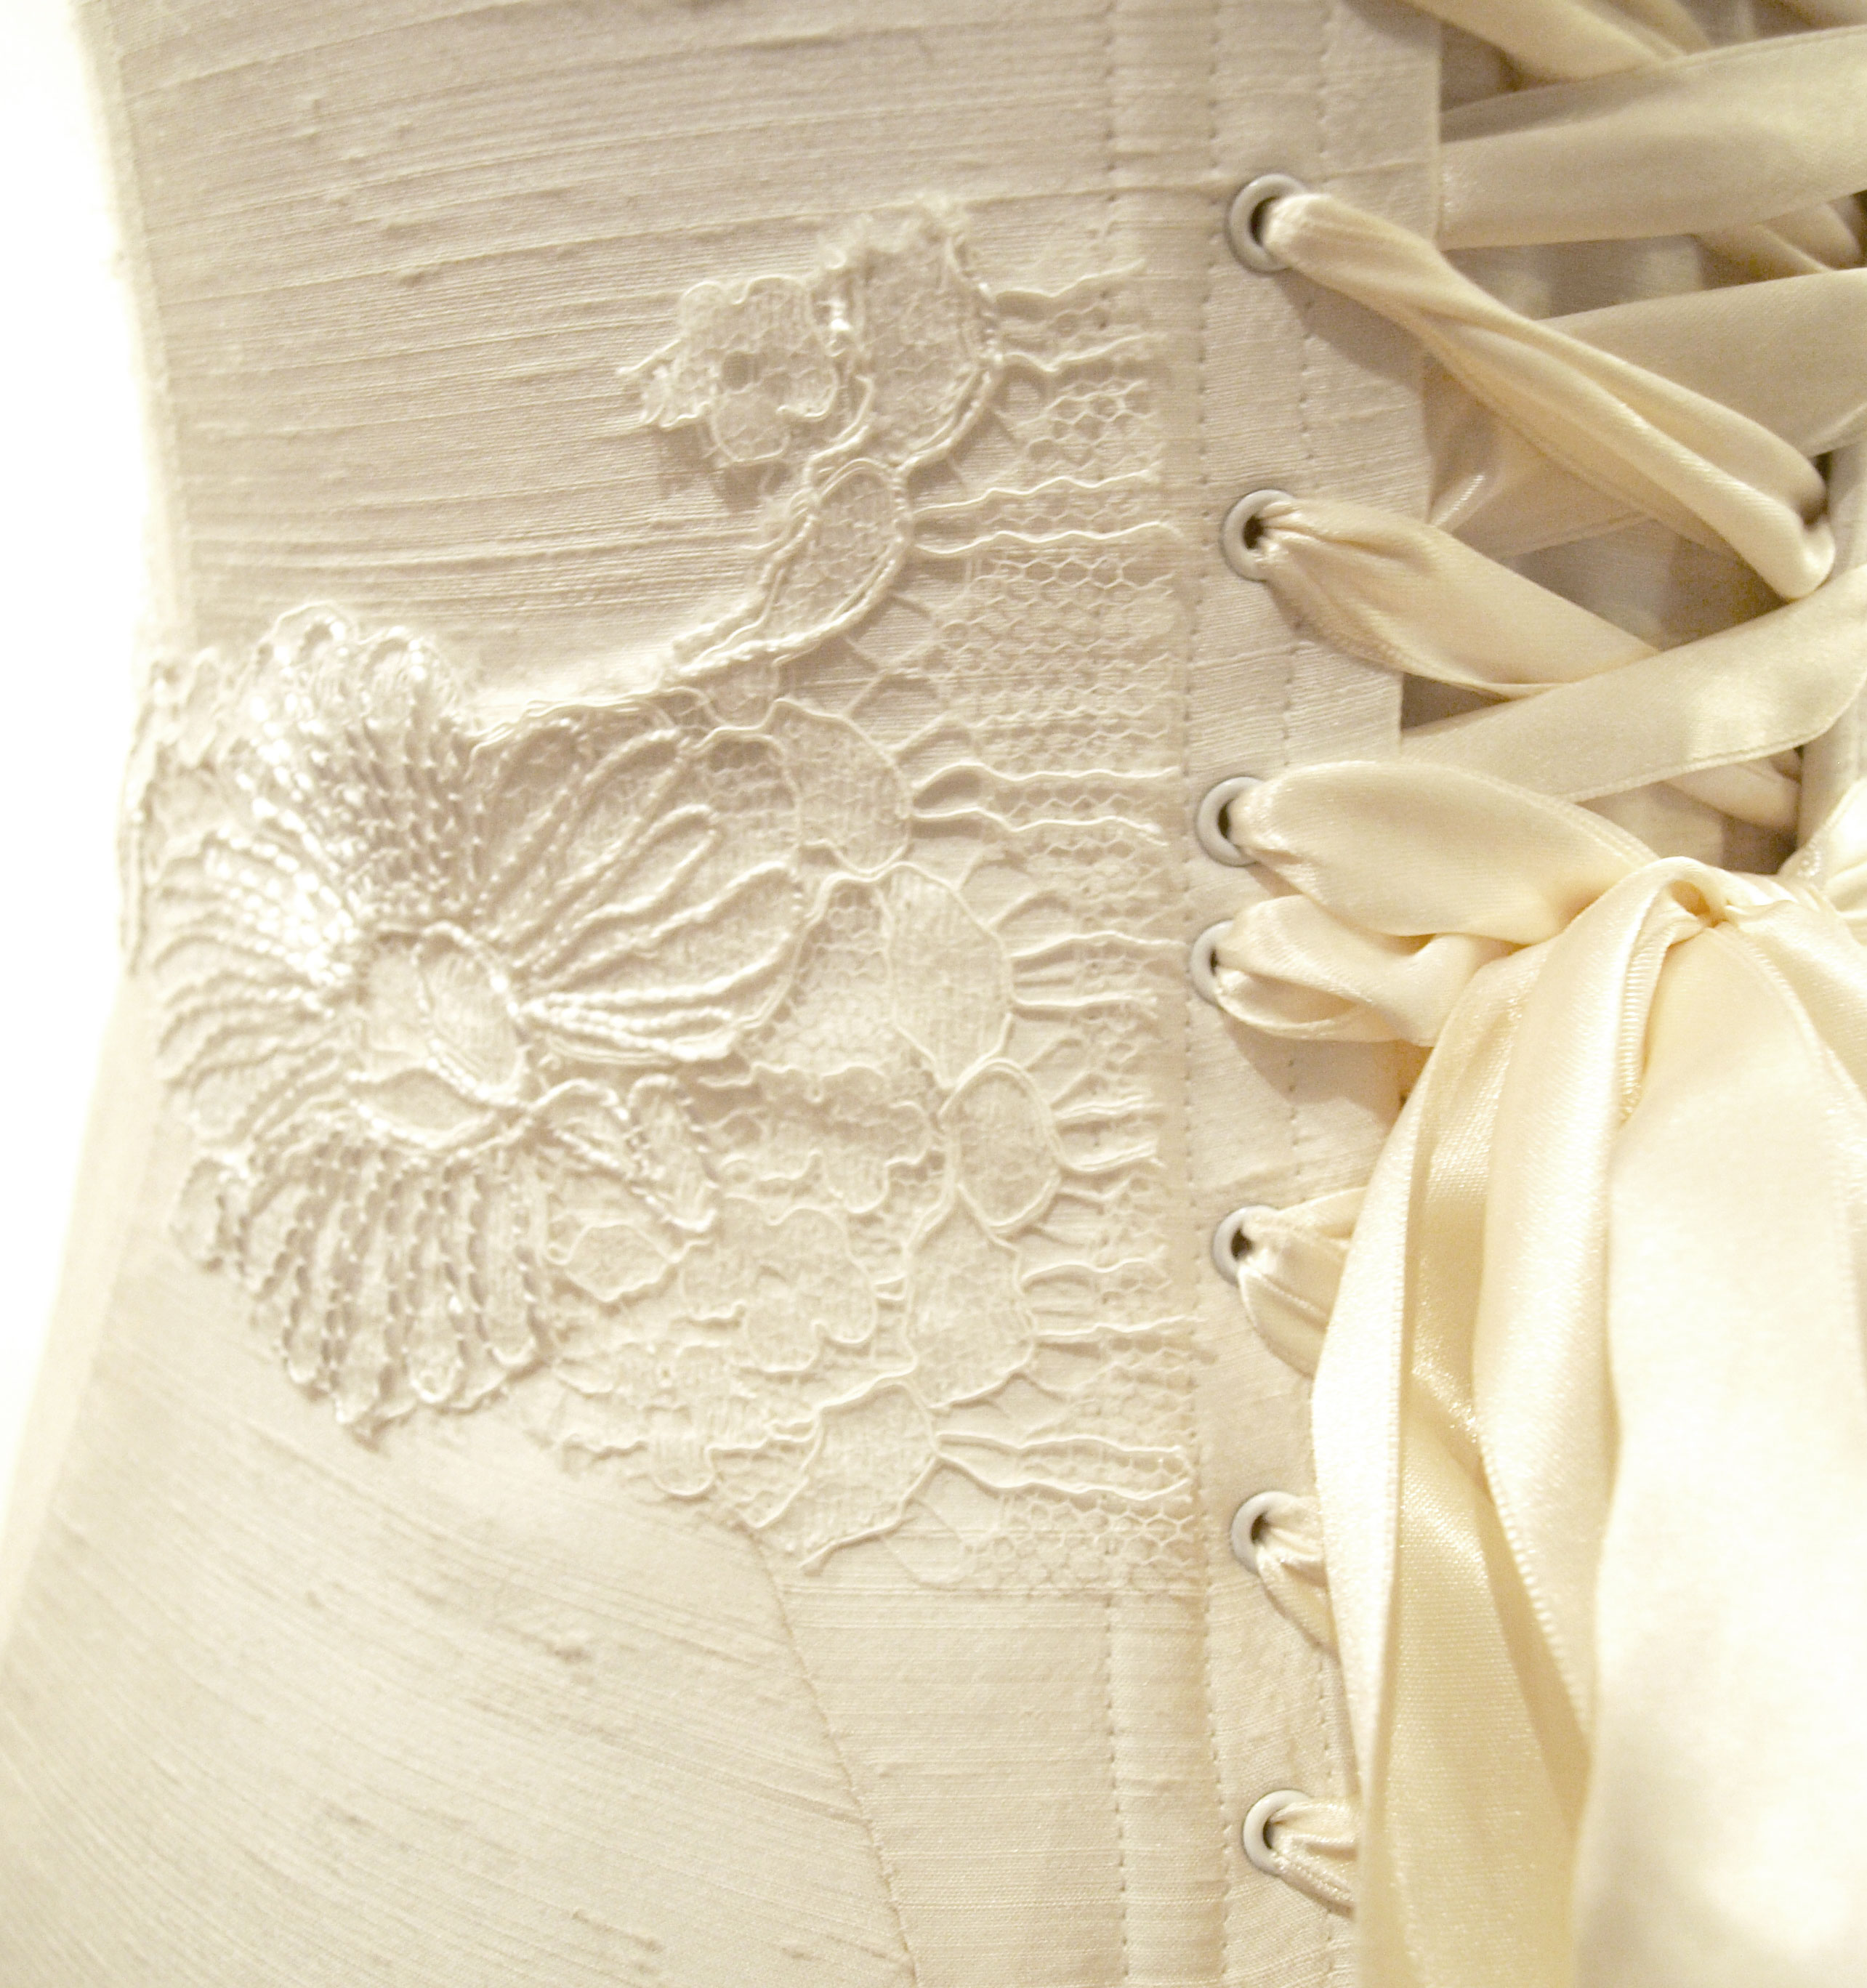 Detail of the lace